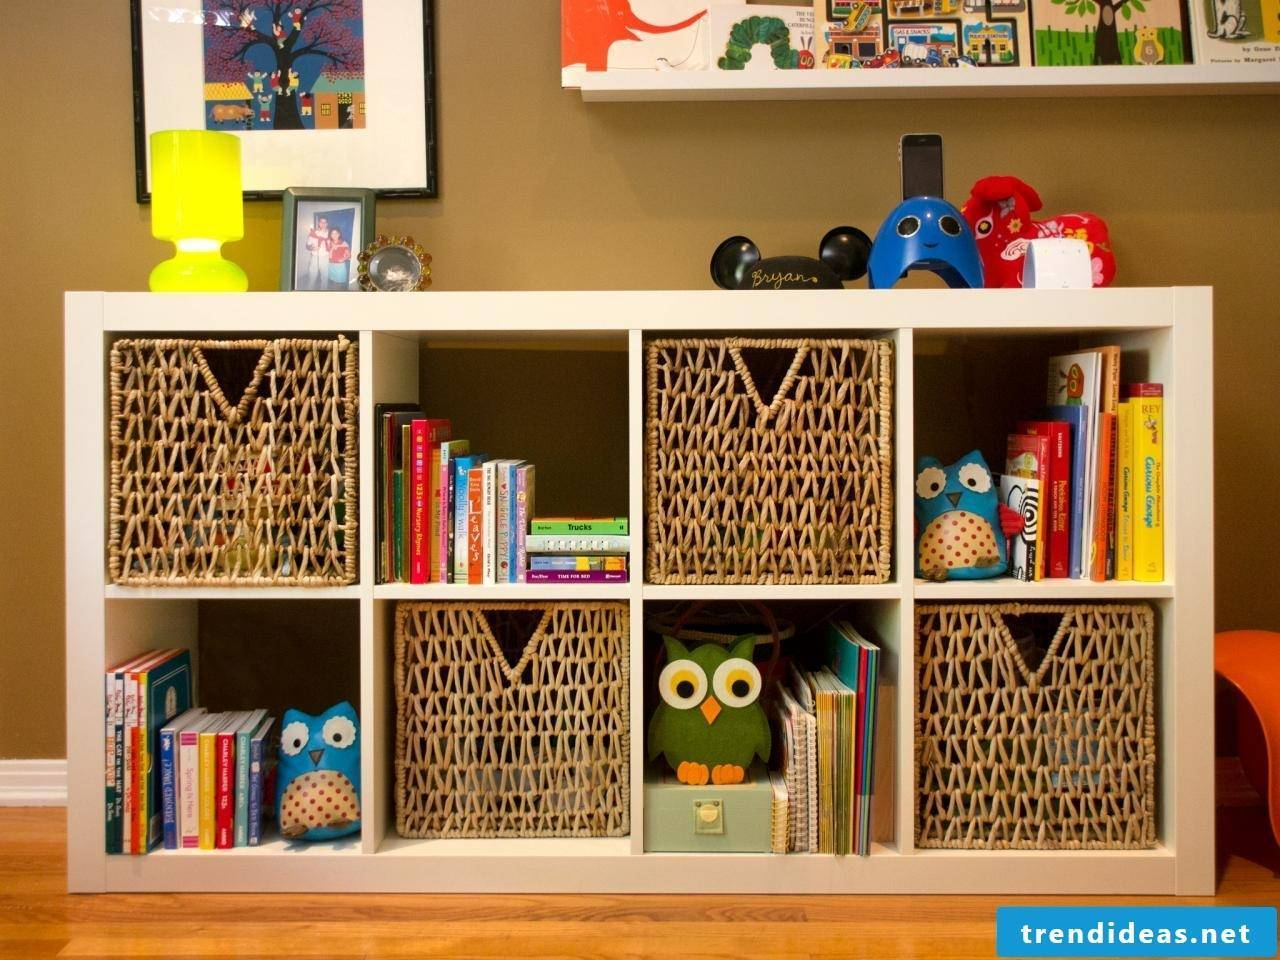 Creating space is a must in the youth and children's rooms